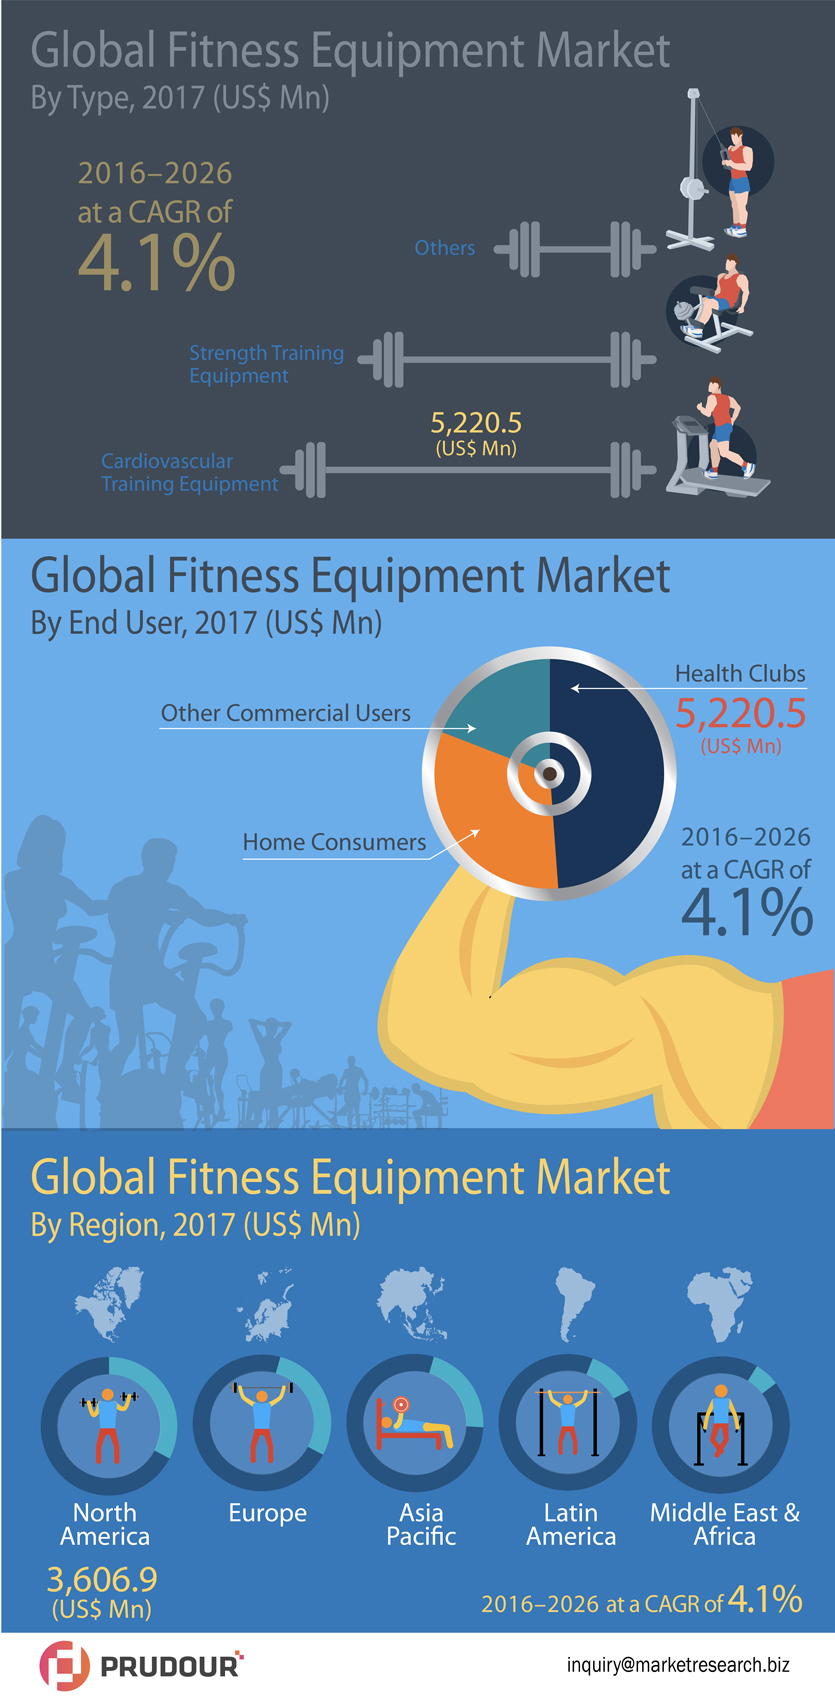 Global Fitness Equipment Market to Register A Stout Growth of US$ 15,500 Mn in 2026